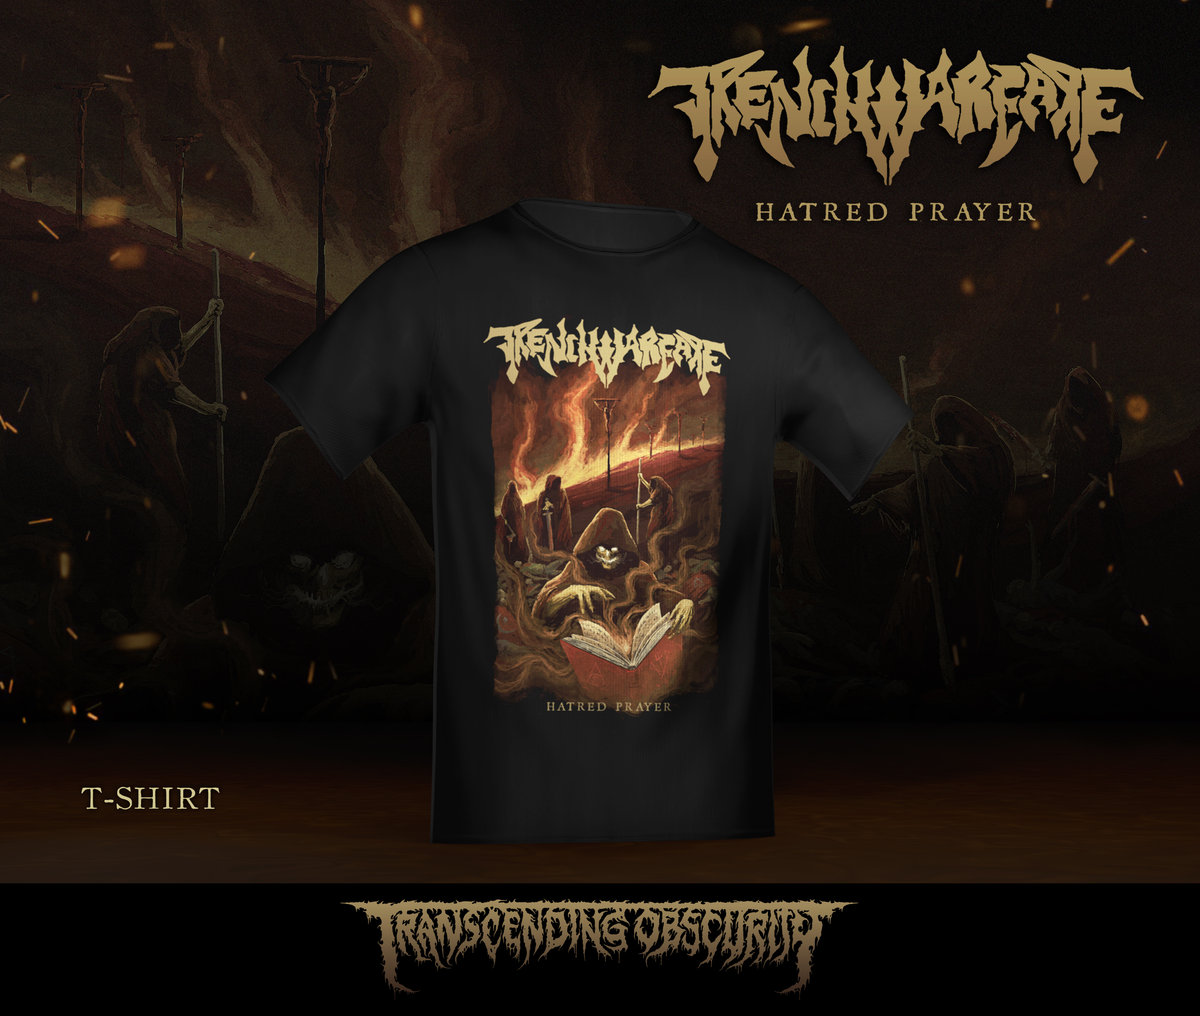 a8a8556fb1c9 TRENCH WARFARE – Hatred Warfare (Black / Death Metal) Album Artwork T-shirt  (Limited to 30) + Digital Download